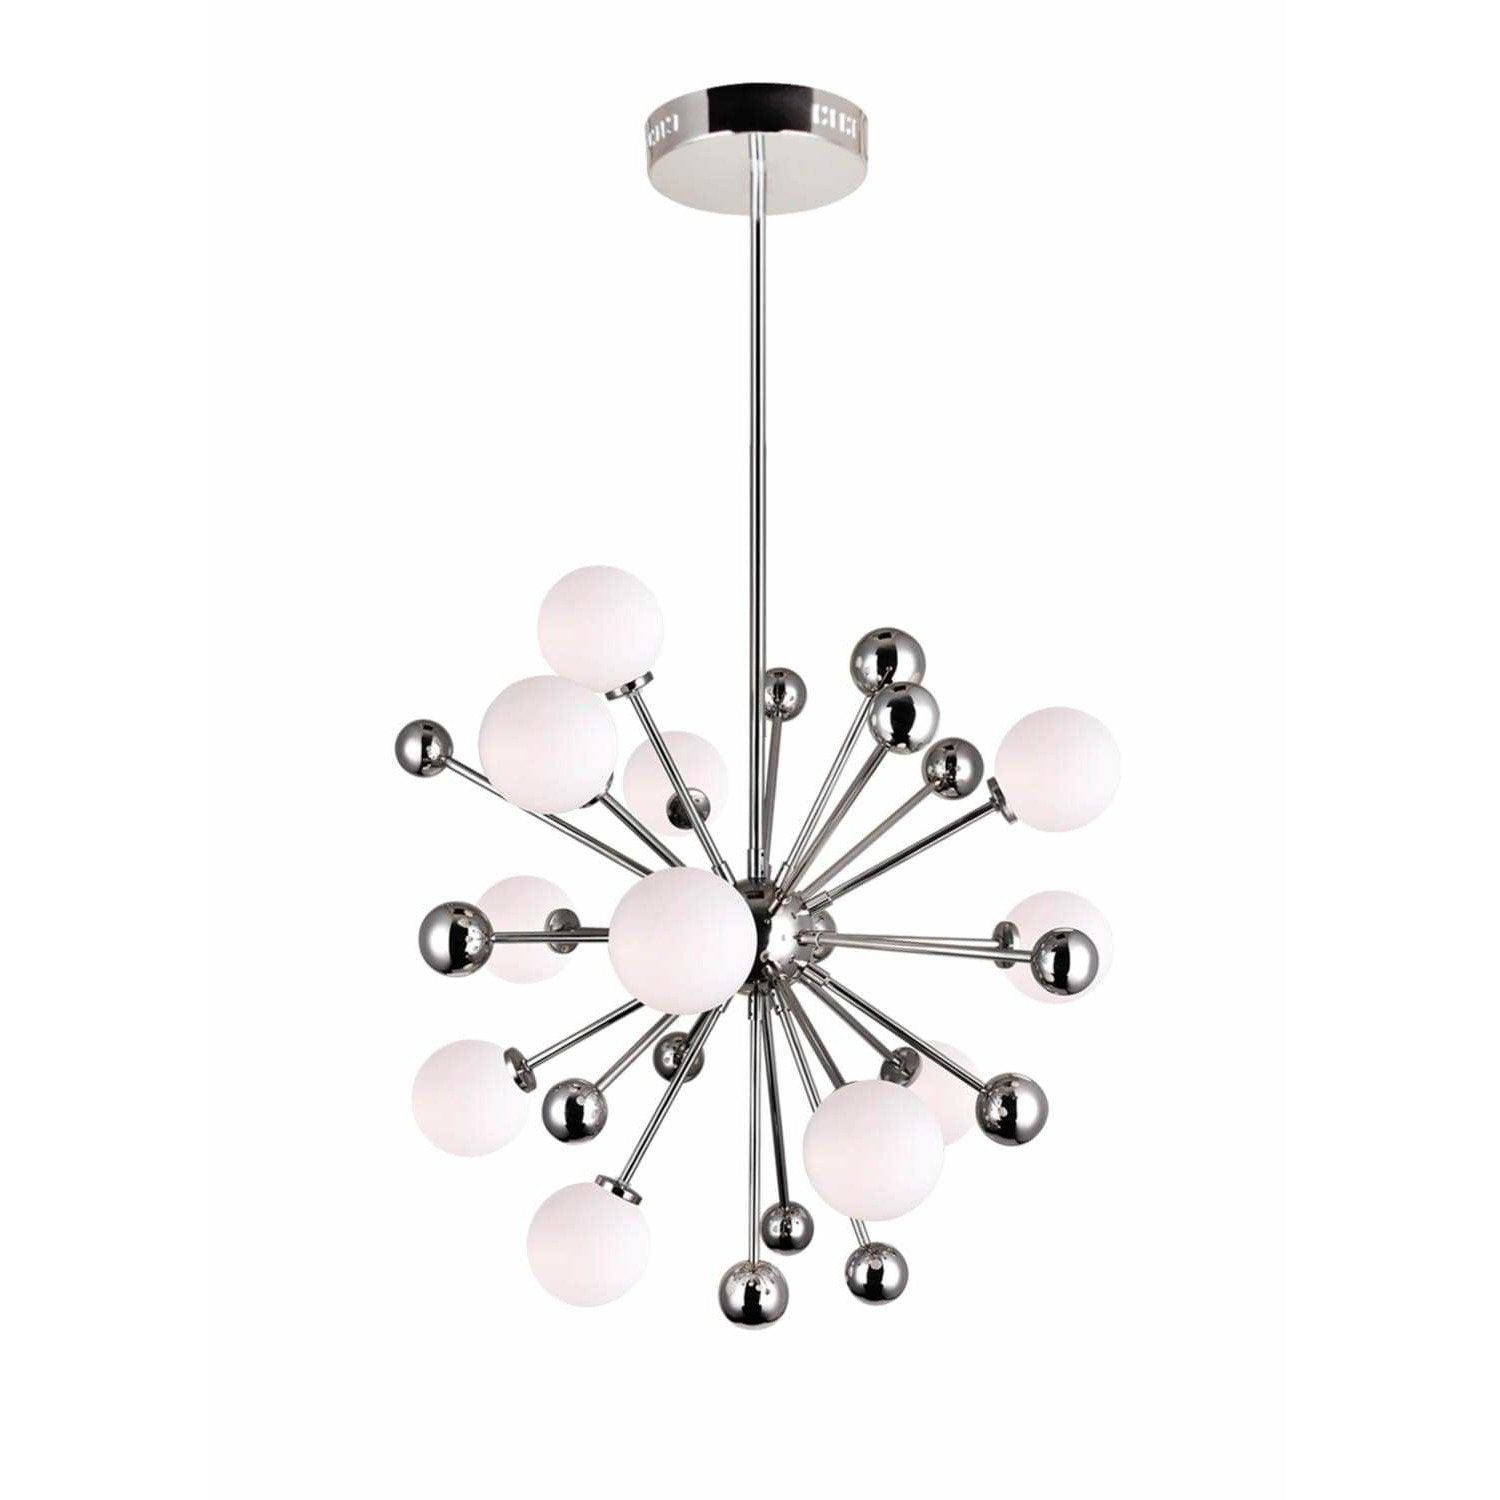 CWI Lighting Chandeliers Polished Nickel Element 11 Light Chandelier with Polished Nickel Finish by CWI Lighting 1125P24-11-613